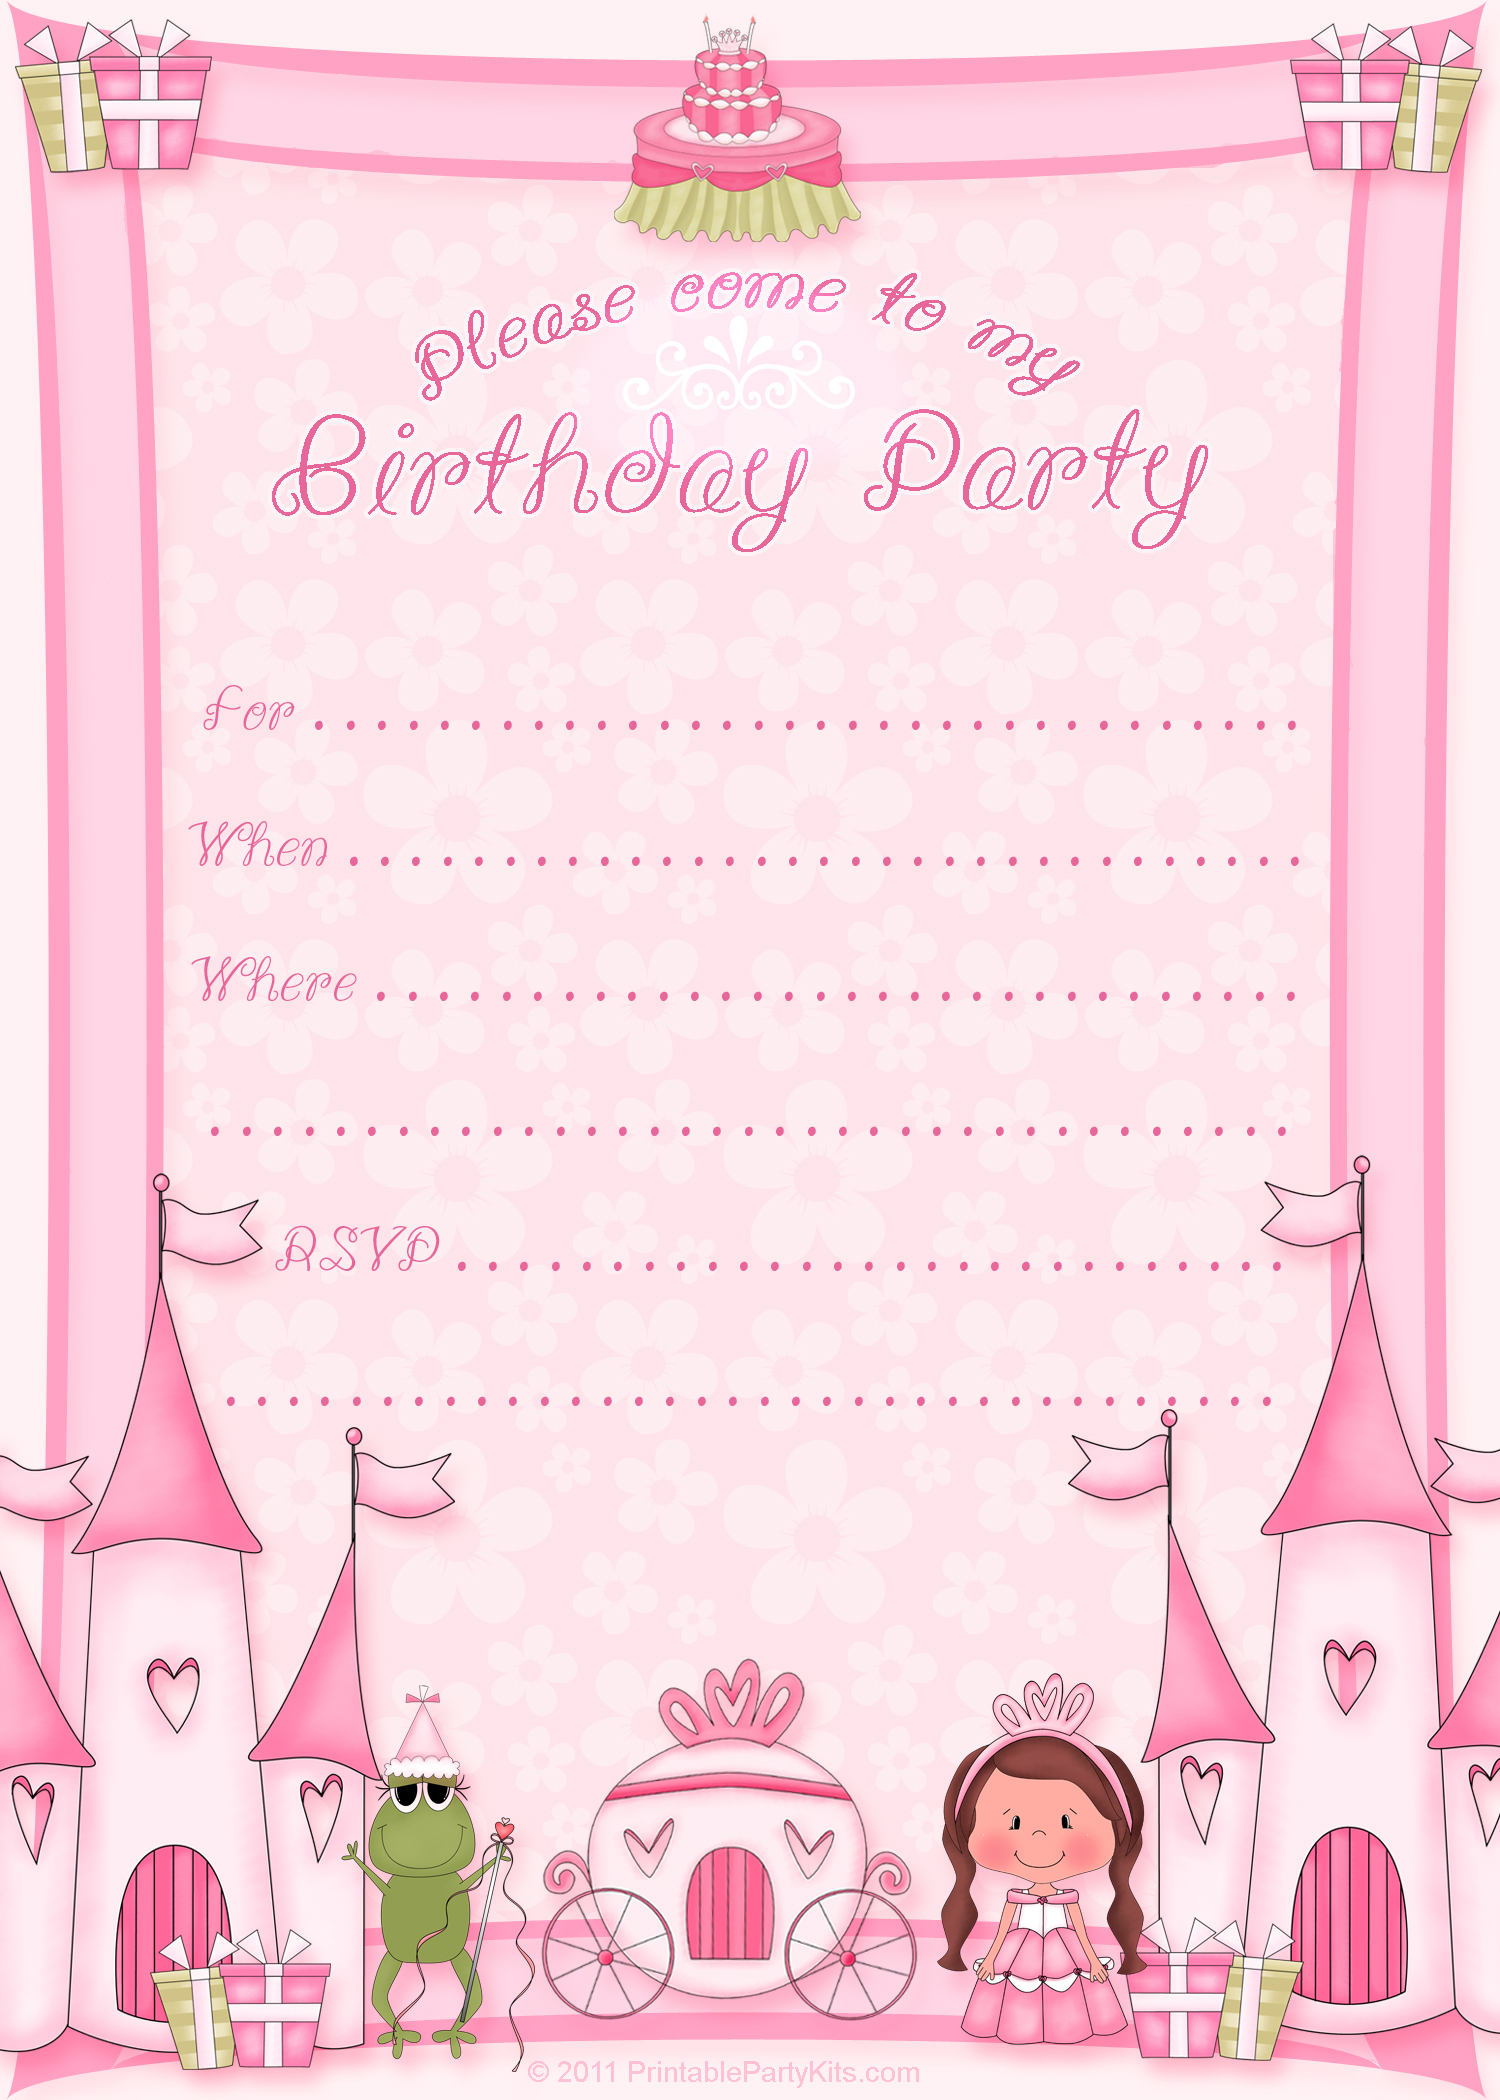 birthday party invitation with the colorful decorations clipart free image